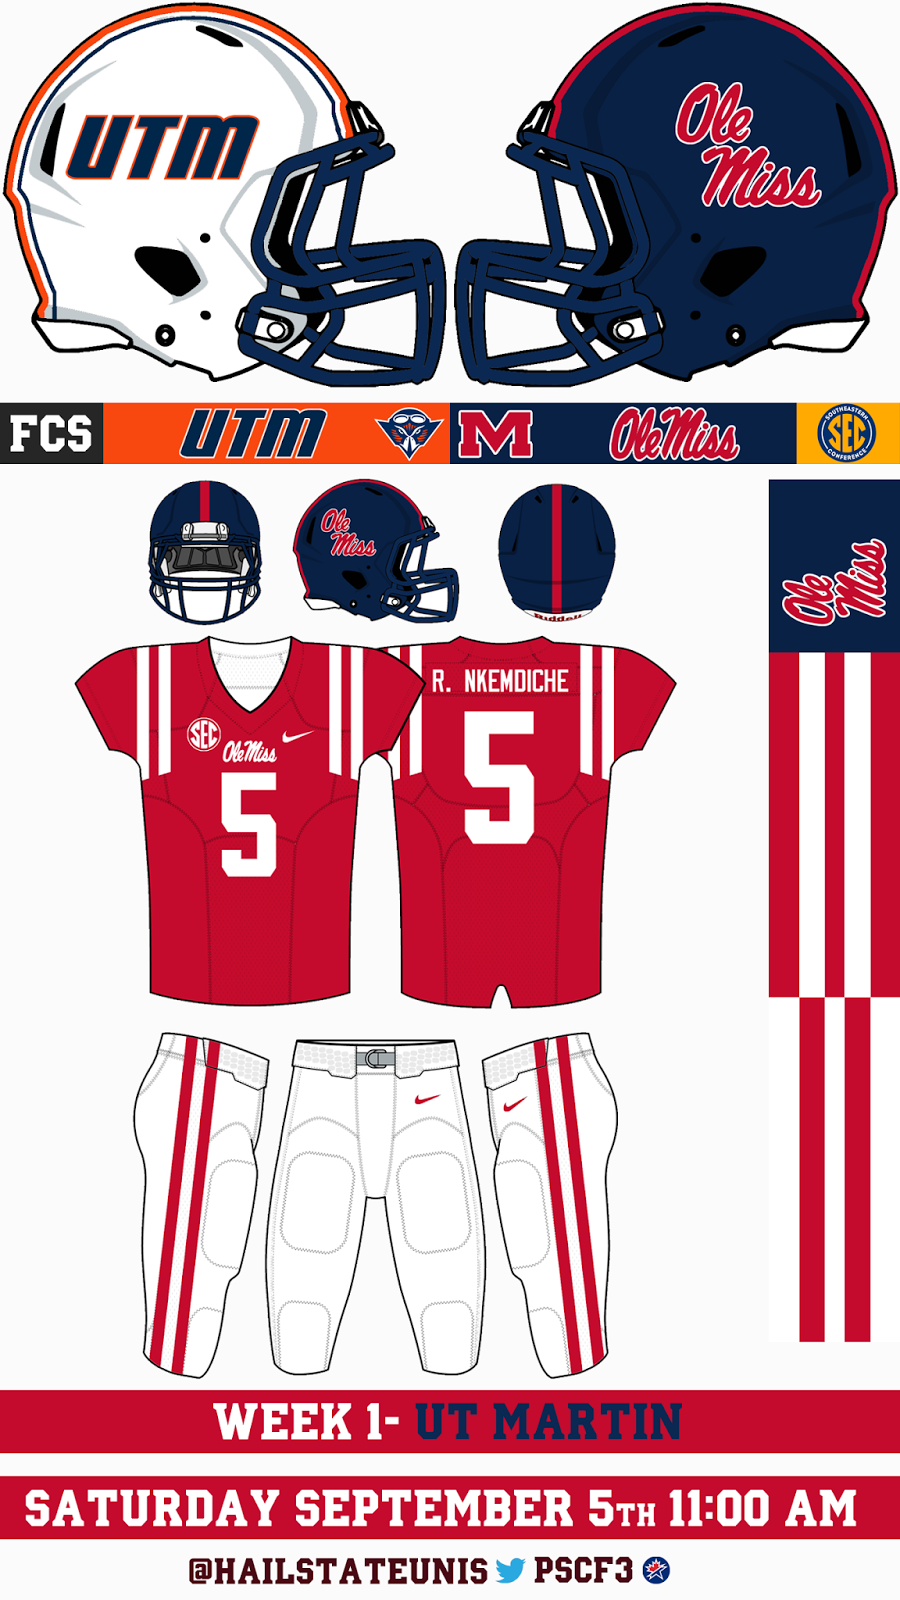 Ole miss gameday colors 2015 - Game Photos